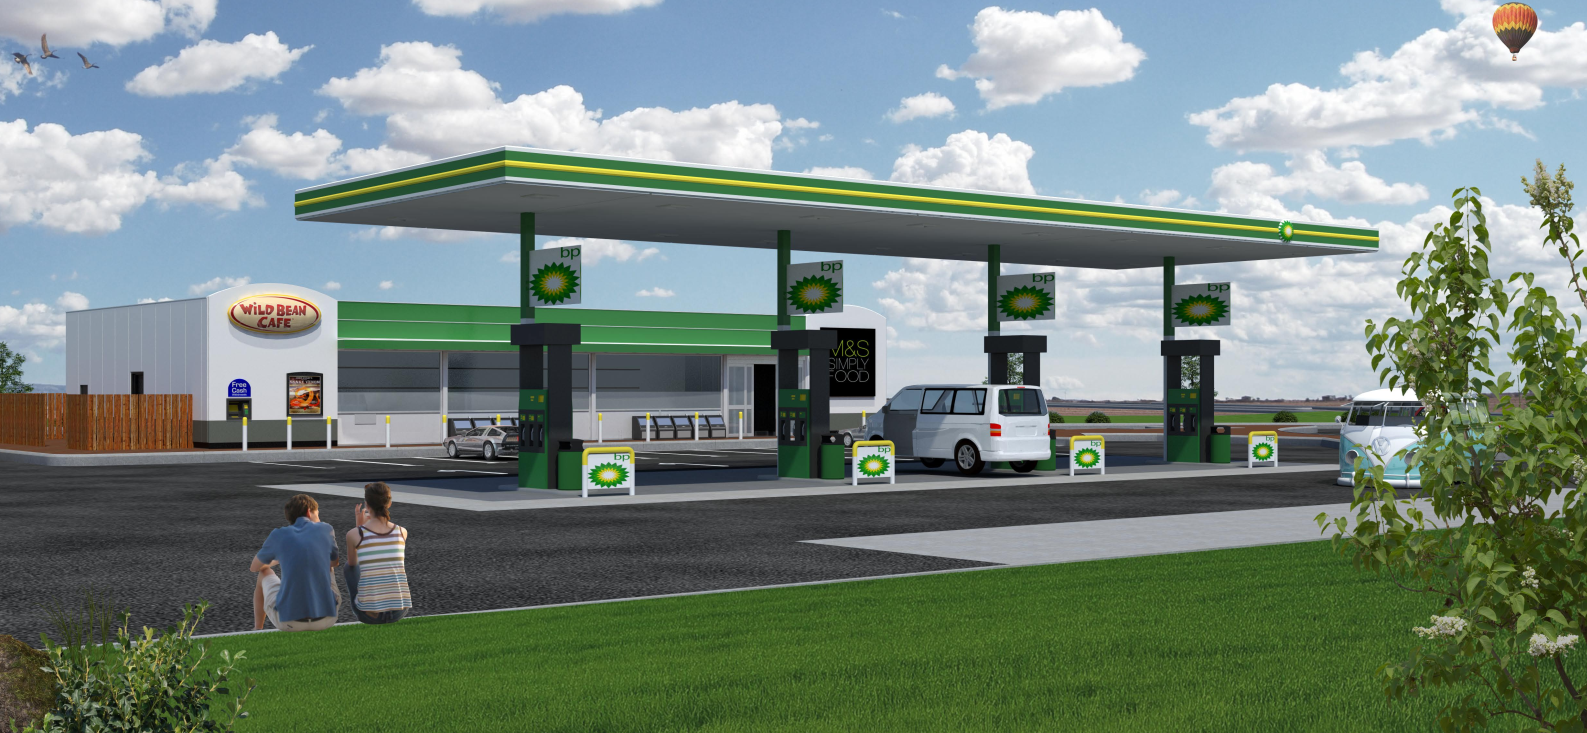 Plans for new petrol station approved at appeal